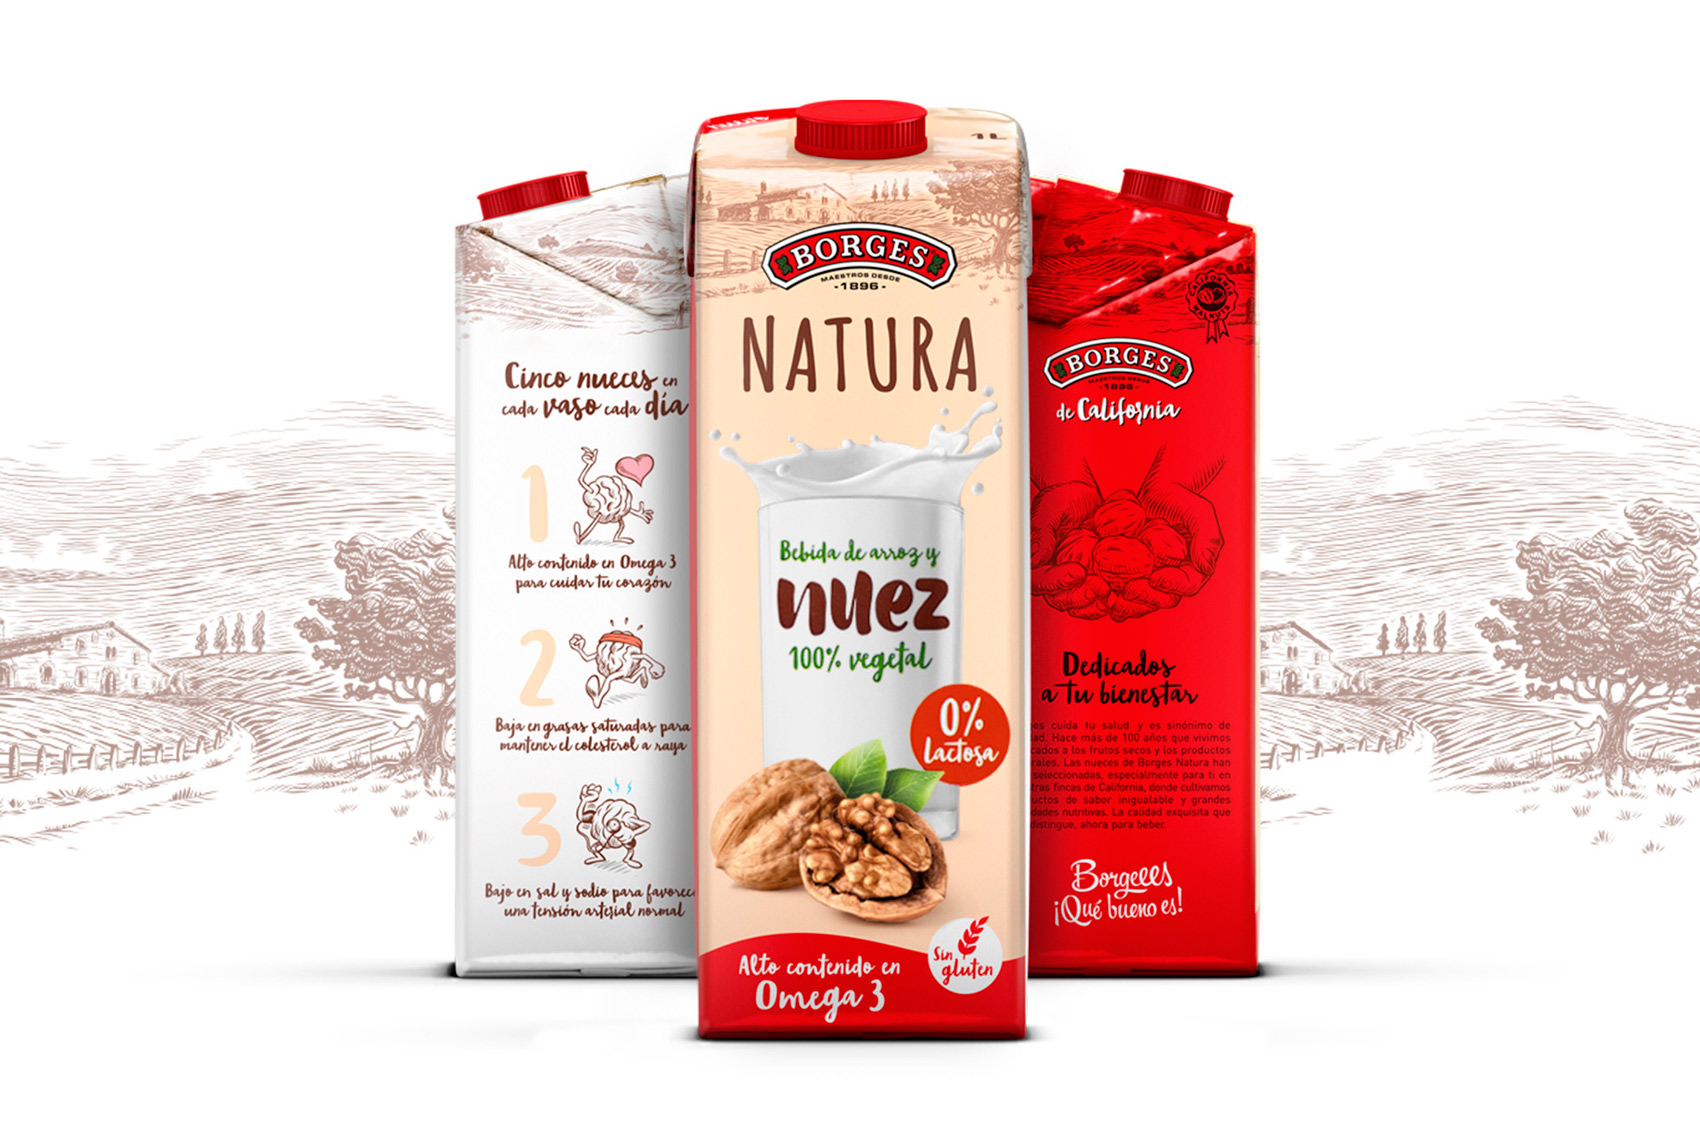 Borges International Group Borges Natura nut drink packaging graphic design tetra-brick illustration product shooting Vibranding